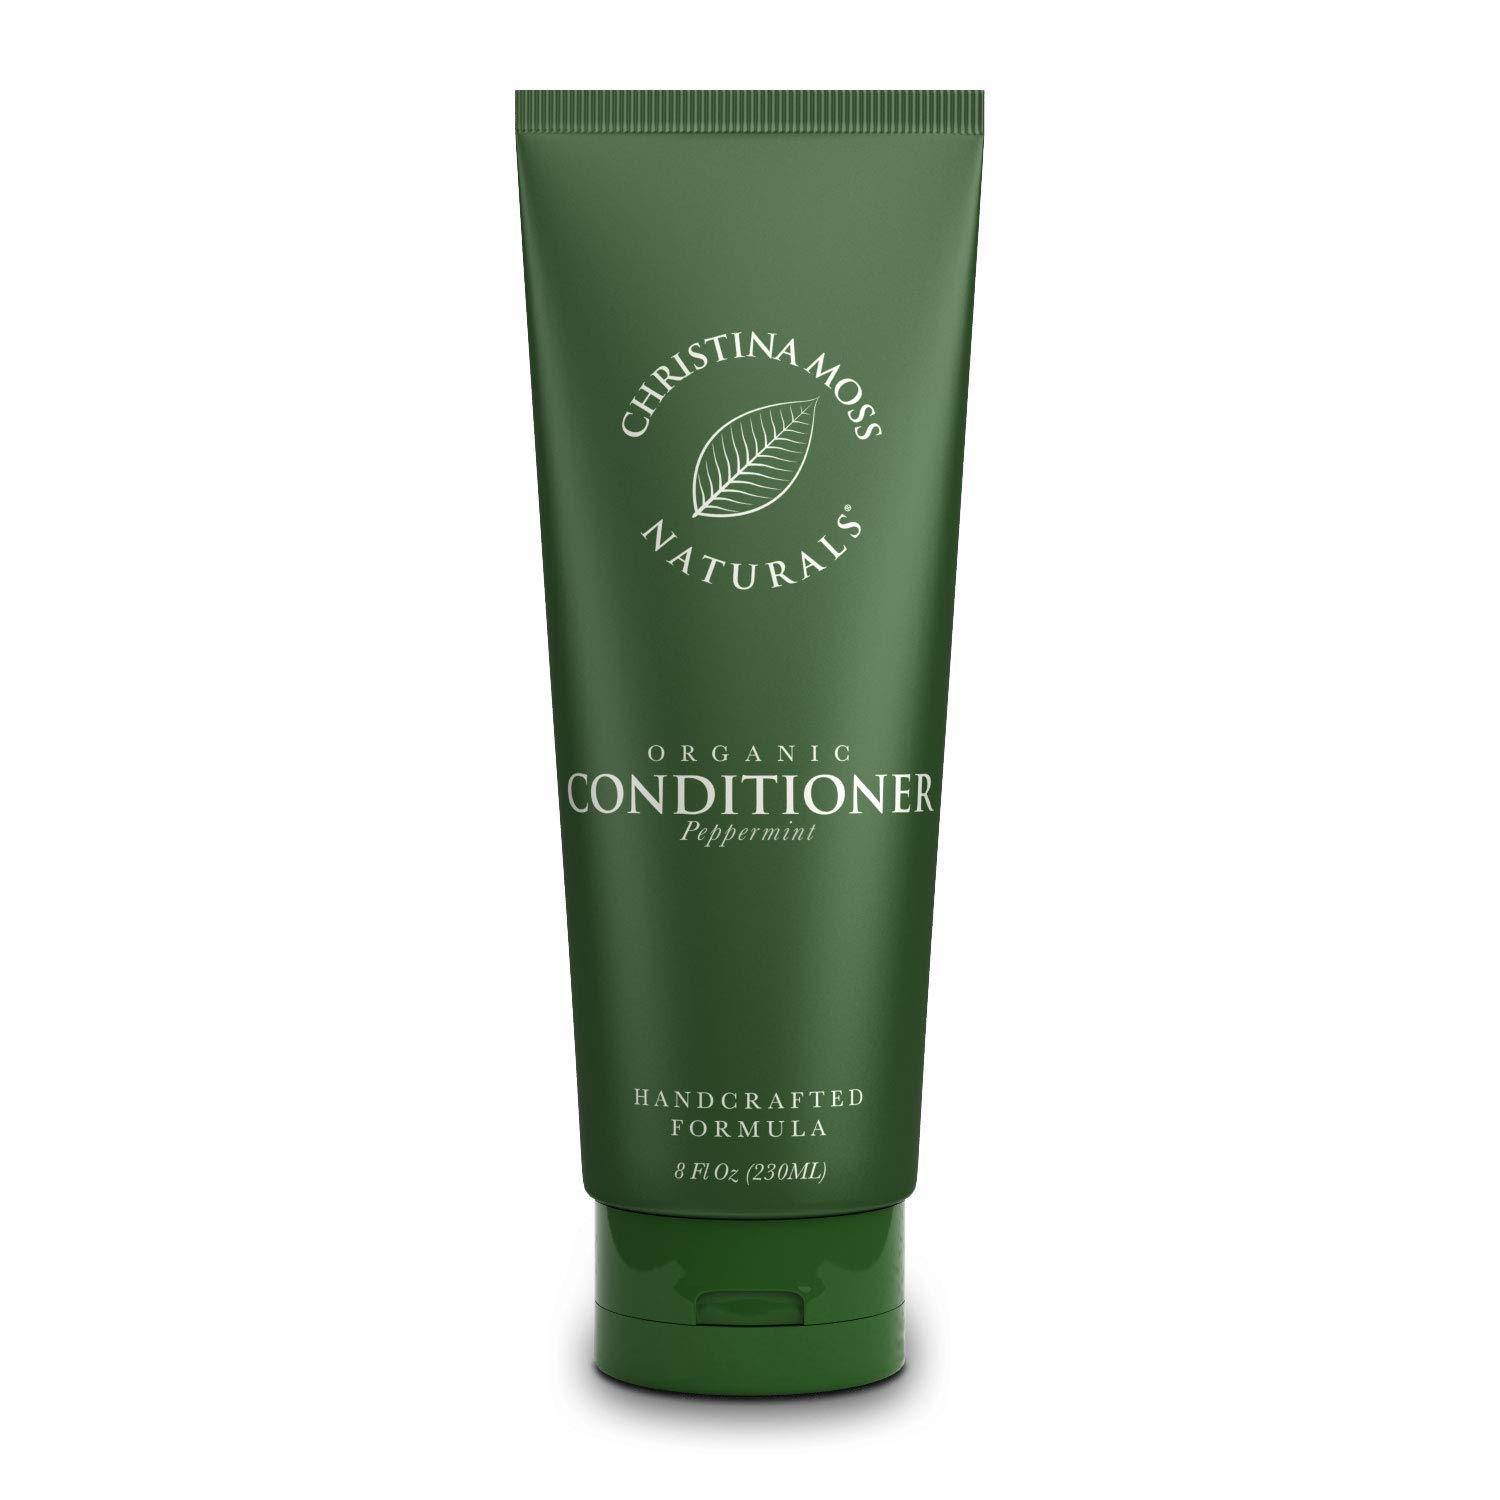 Hair Conditioner, With Organic & Natural Ingredients - All Hair Types - Dry, Oily, Curly, Fine - Daily & Leave In For Women & Men, Sulfate Free, Non Toxic No Harmful Chemicals. Christina Moss Naturals